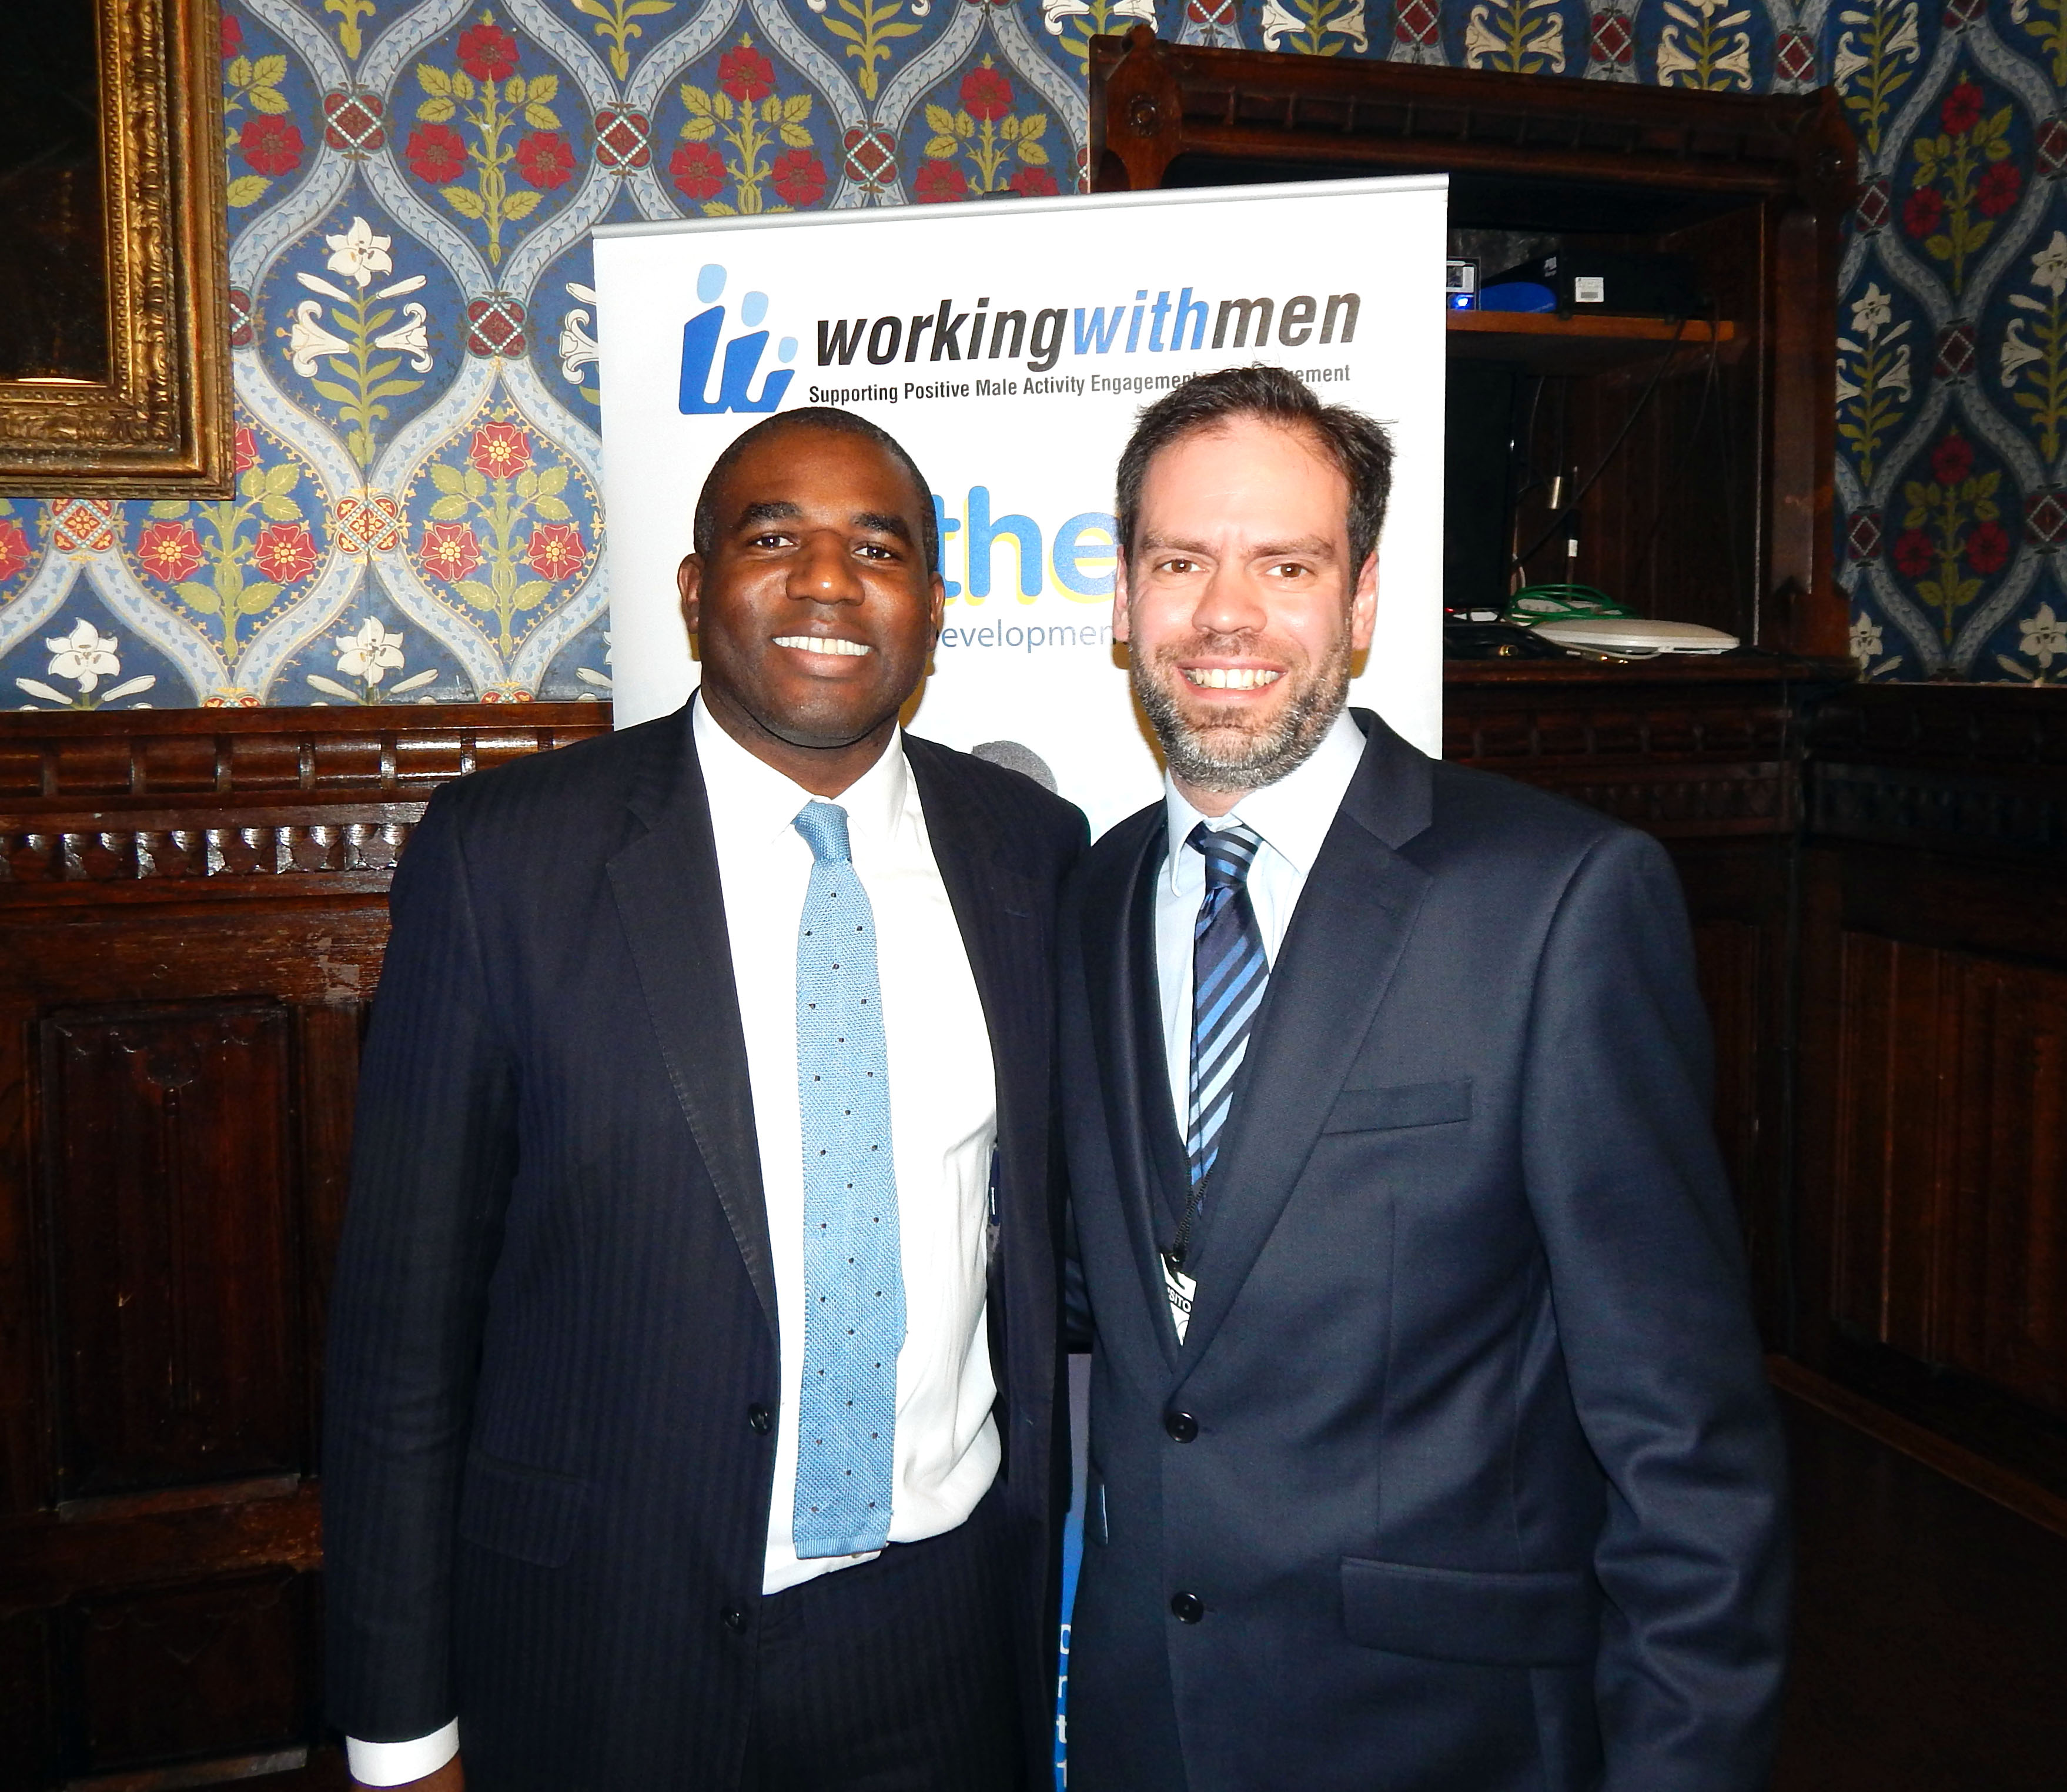 APPGF, David Lammy, All Party Parliamentary Group on Fatherhood, Dadbloguk, dadbloguk.com